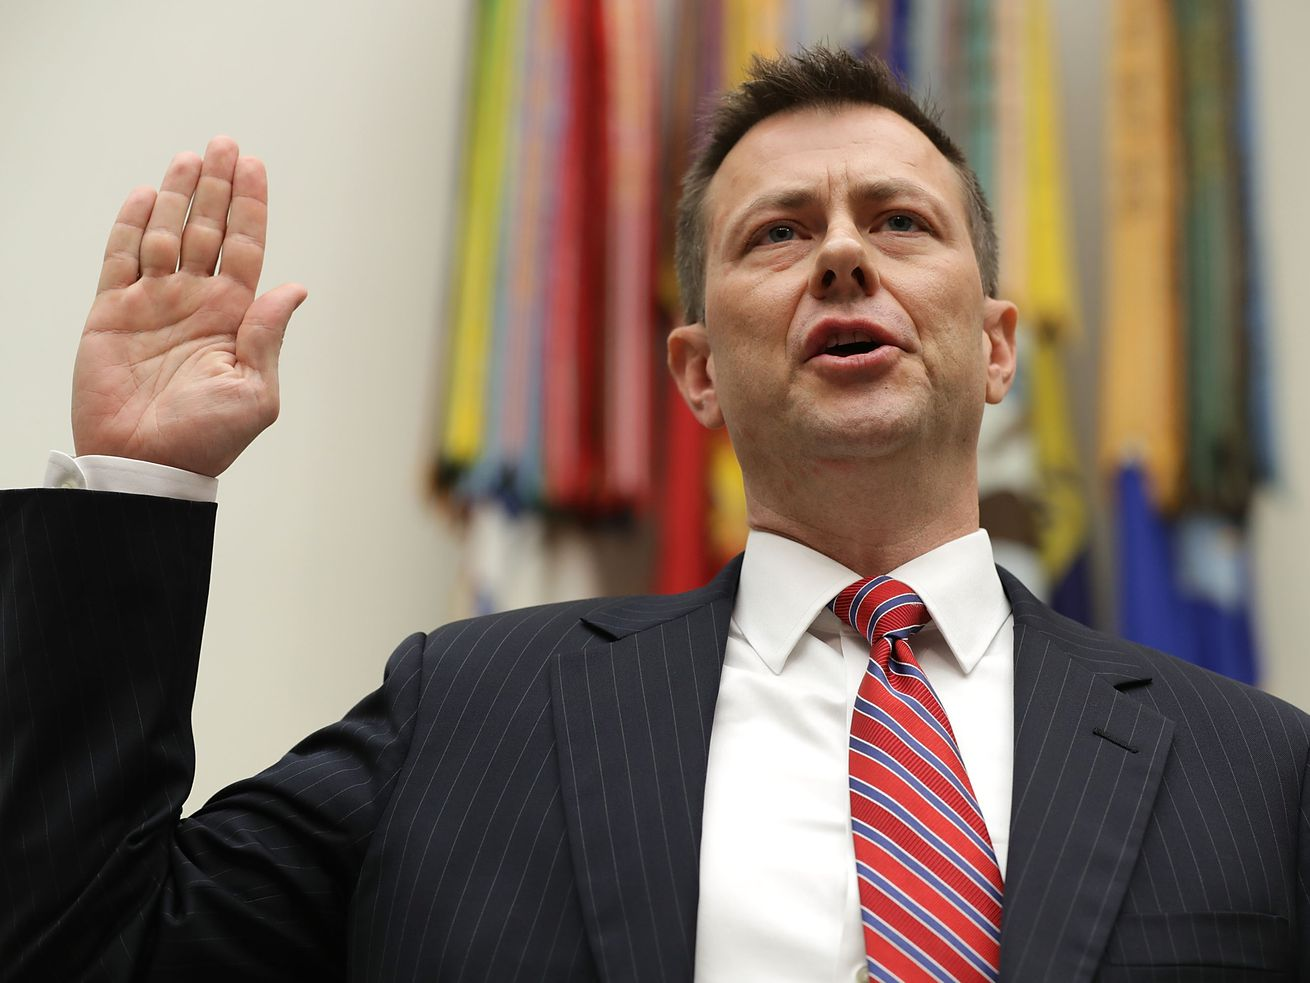 Deputy Assistant FBI Director Peter Strzok is sworn in before a joint committee hearing of the House Judiciary and Oversight and Government Reform committees in the Rayburn House Office Building on Capitol Hill July 12, 2018 in Washington, DC.